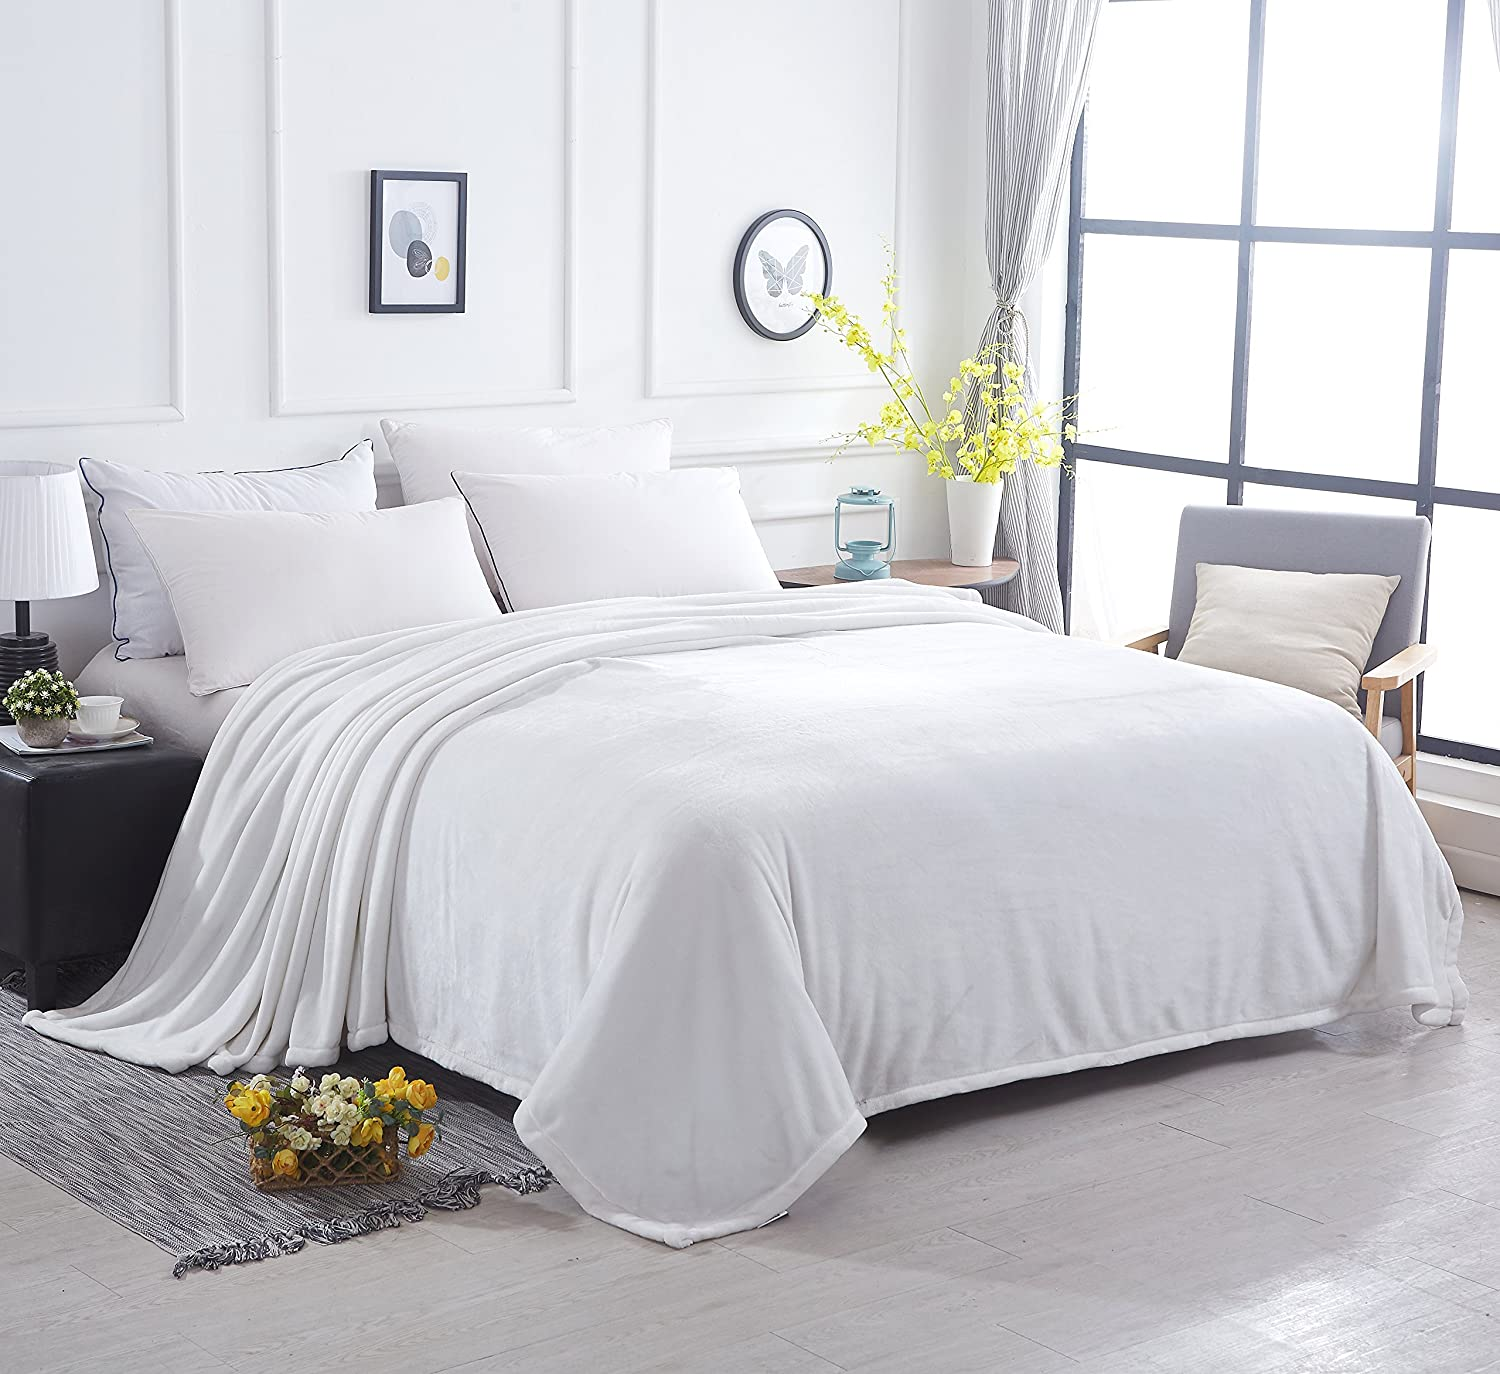 Sonoro Kate Fleece Blanket Soft Warm Fuzzy Plush Extra Queen(100-Inch-by-90-Inch) Lightweight Cozy Bed Couch Blanket White